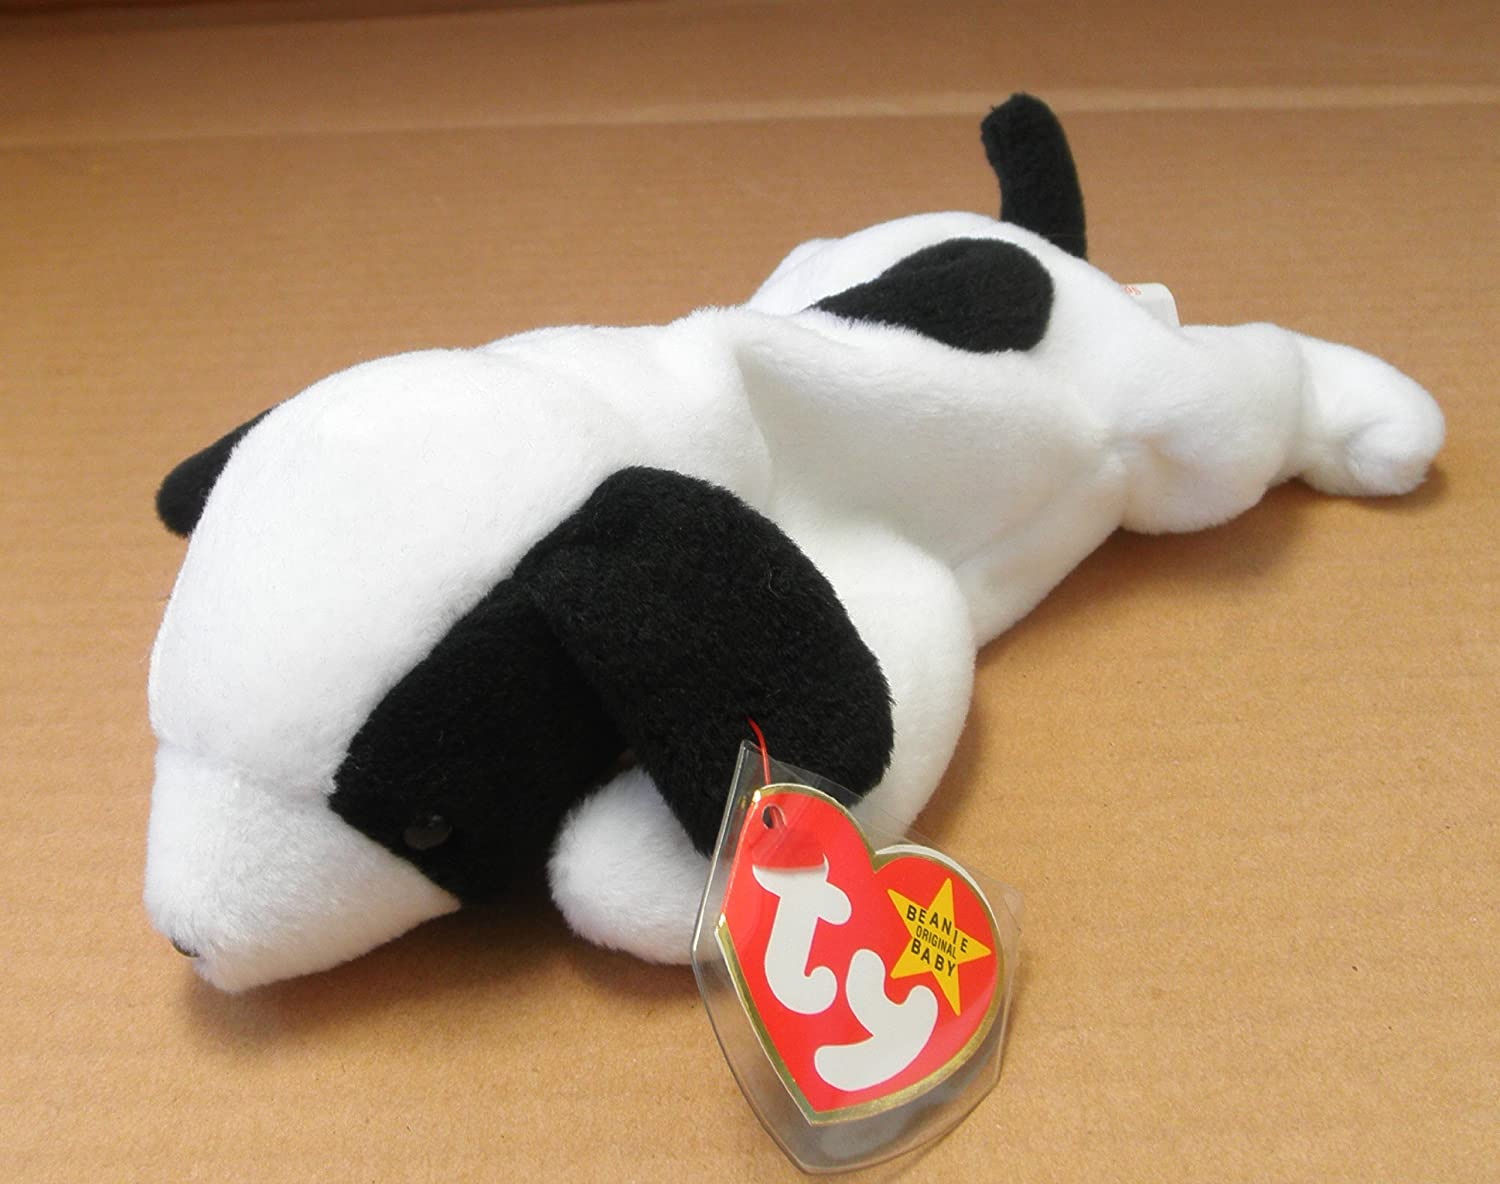 3bcce6f2999 Beanie babies spot the dog stuffed animal plush toy inches long toys games  jpg 1500x1184 Ty